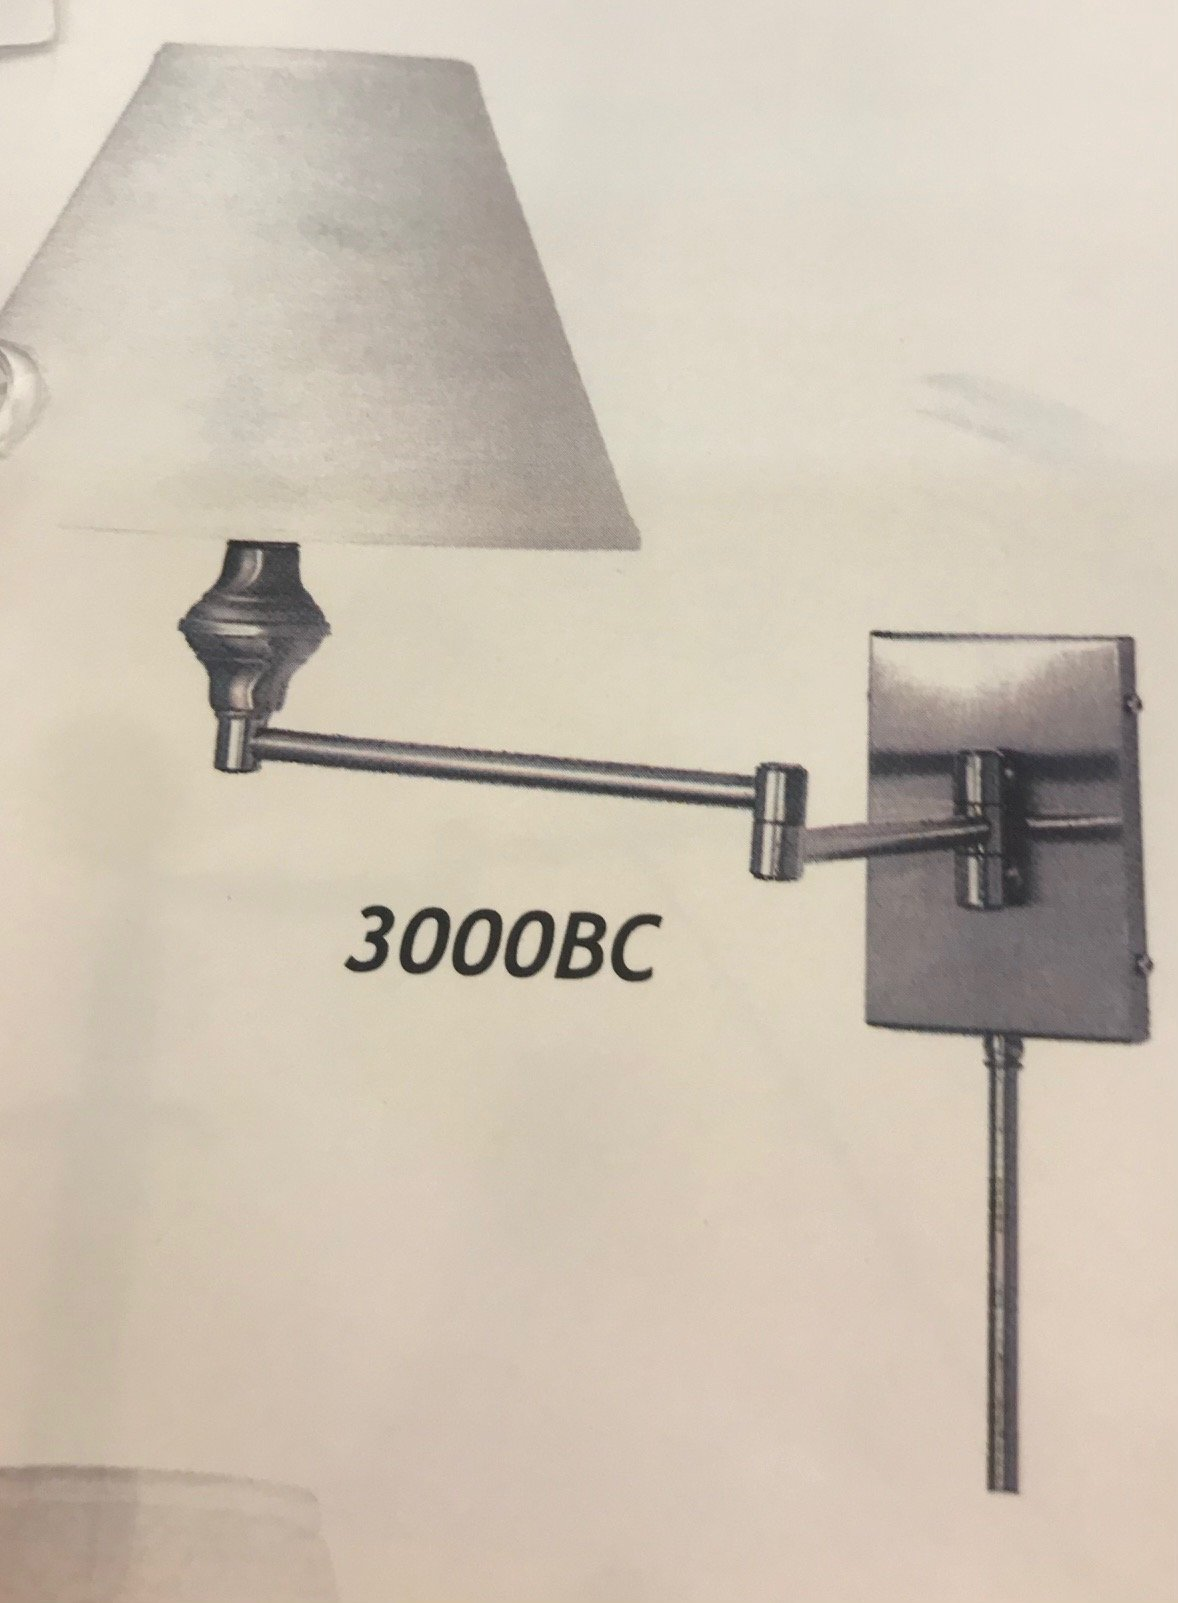 3000 Swing Arm Wall Light Made in Canada Available in Antique Brass,  Brushed Chrome or Black Regular Price $177.99 Sale Price $124.99